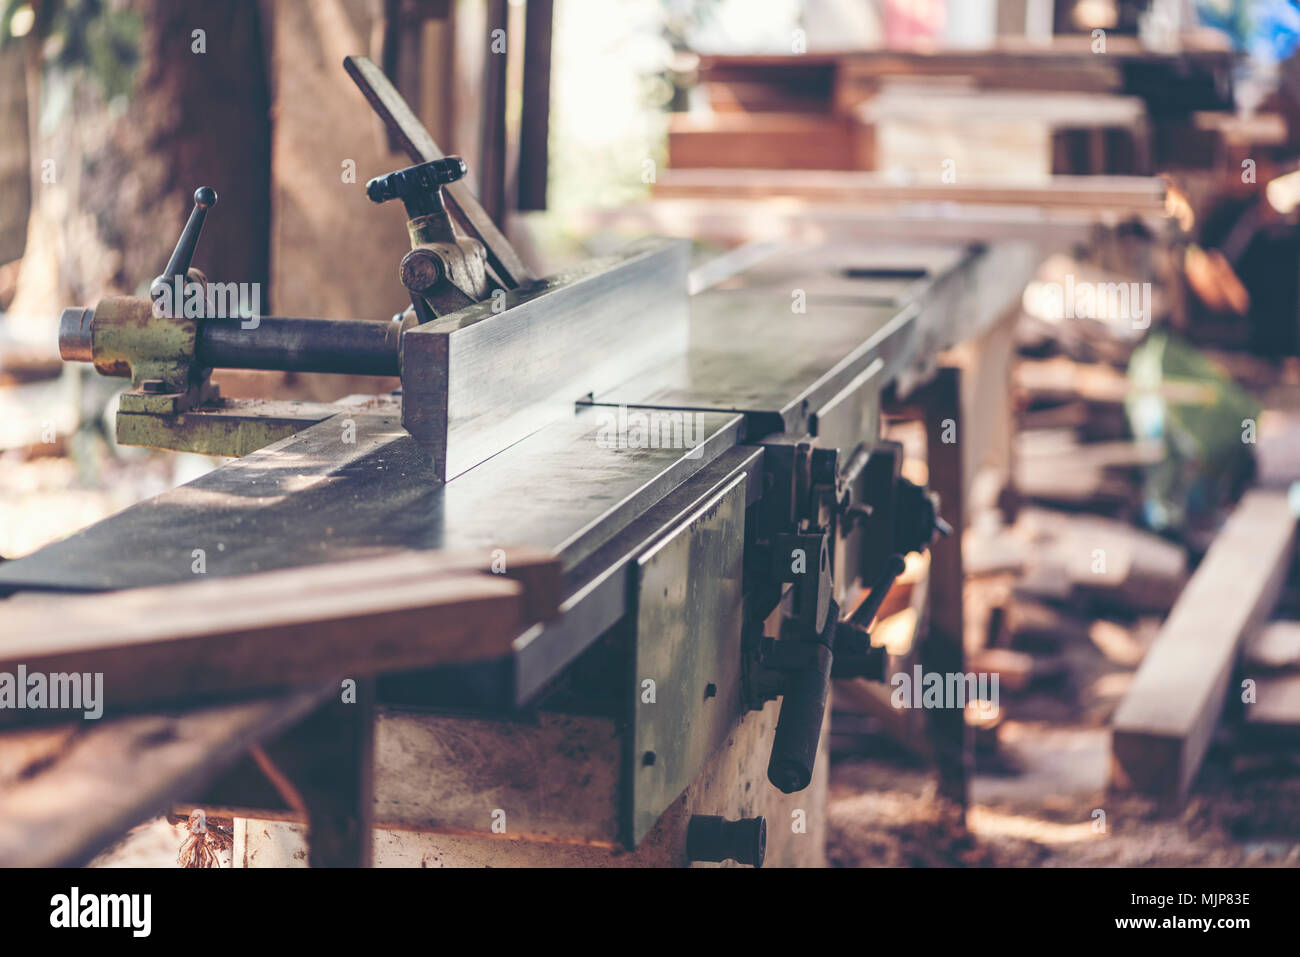 Background Image Of Woodworking Workshop Carpenters Work Table With